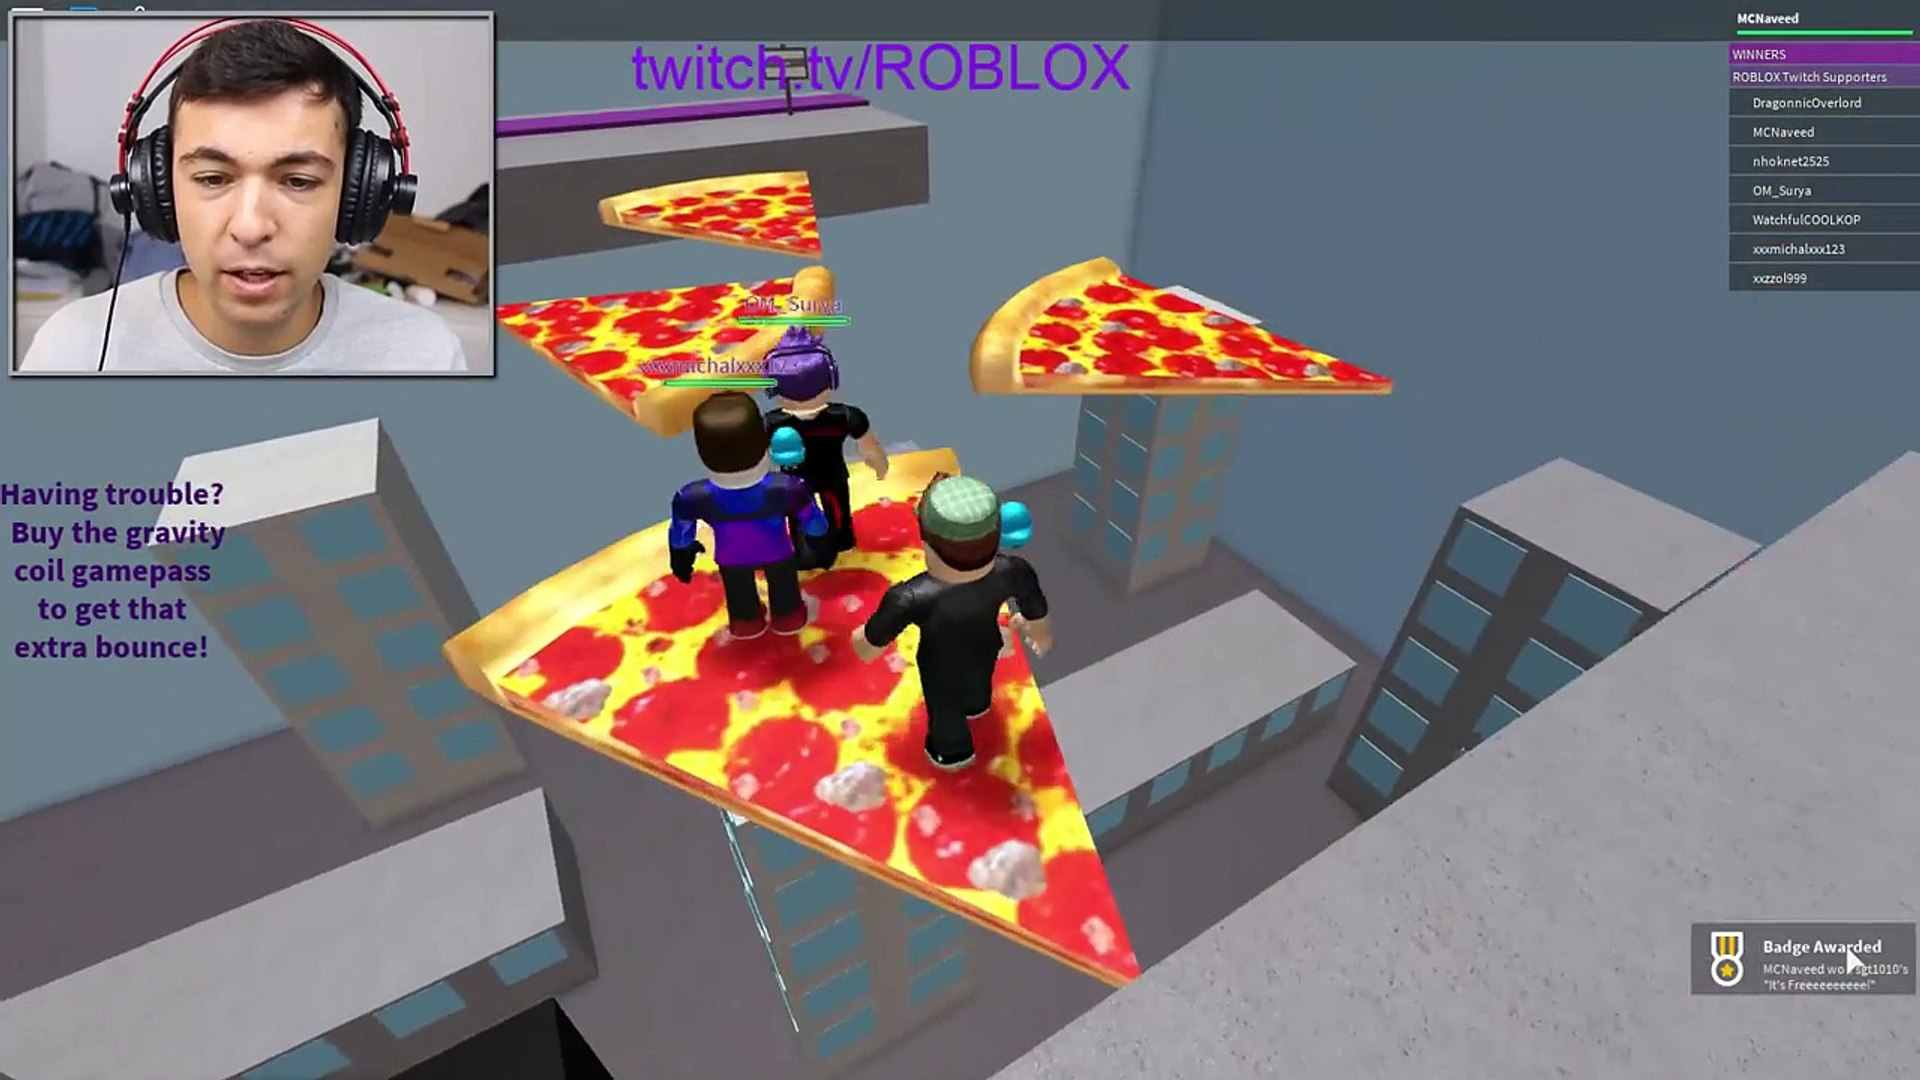 Roblox The Free Prize Giveaway Obby Get Free Robux Items Roblox - roblox the free prize giveaway obby get free robux items